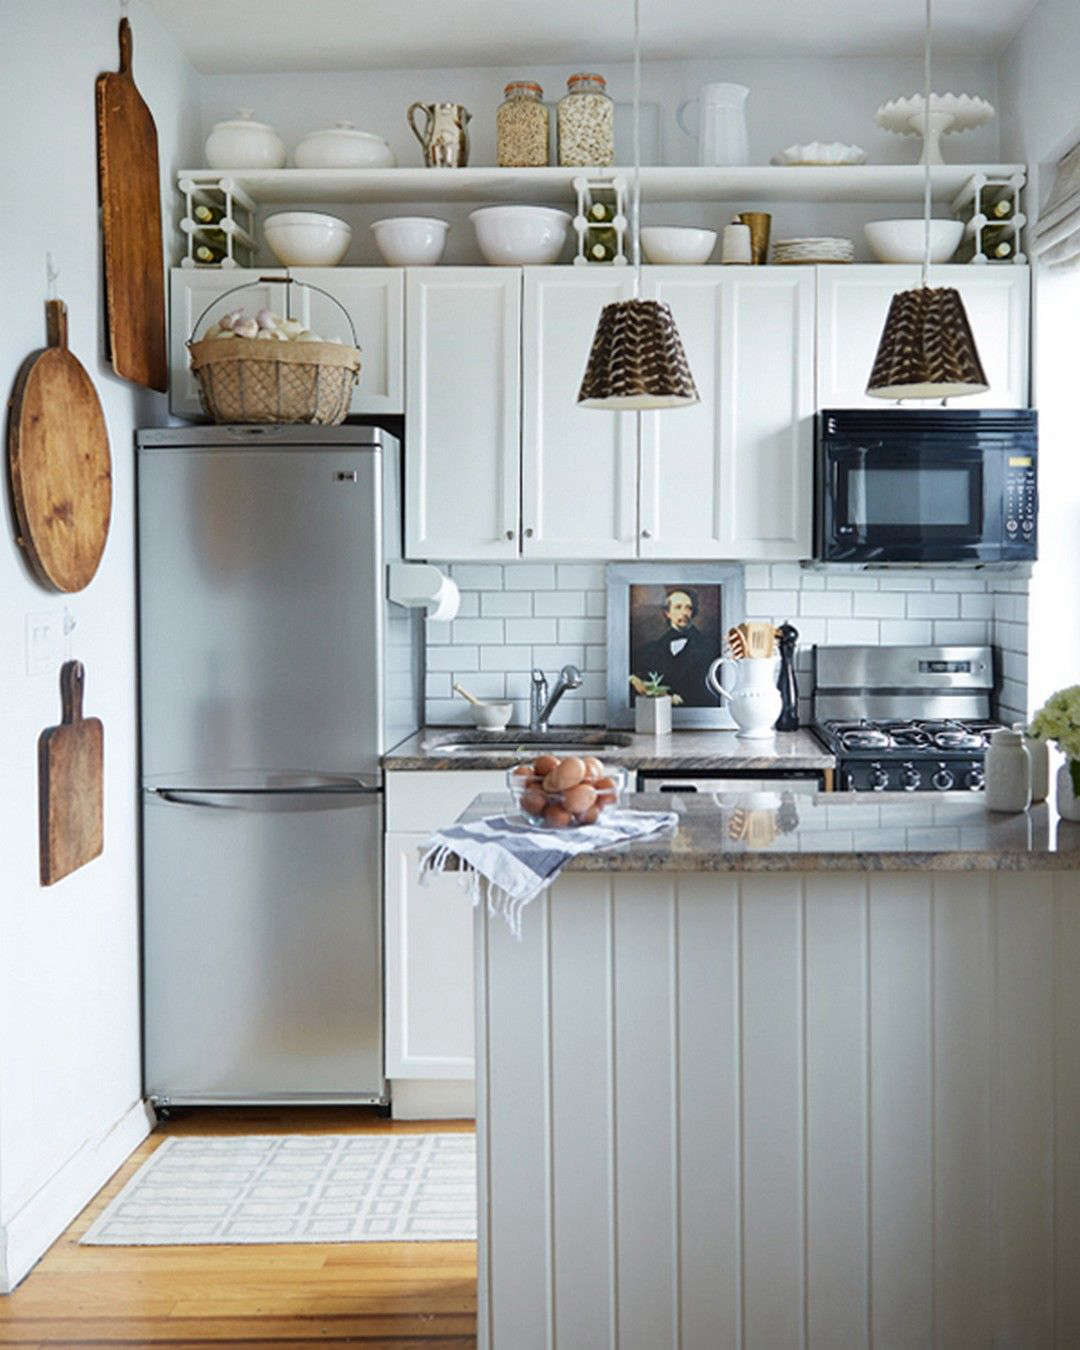 Trending on Remodelista: Kitchens 101 - Gardenista